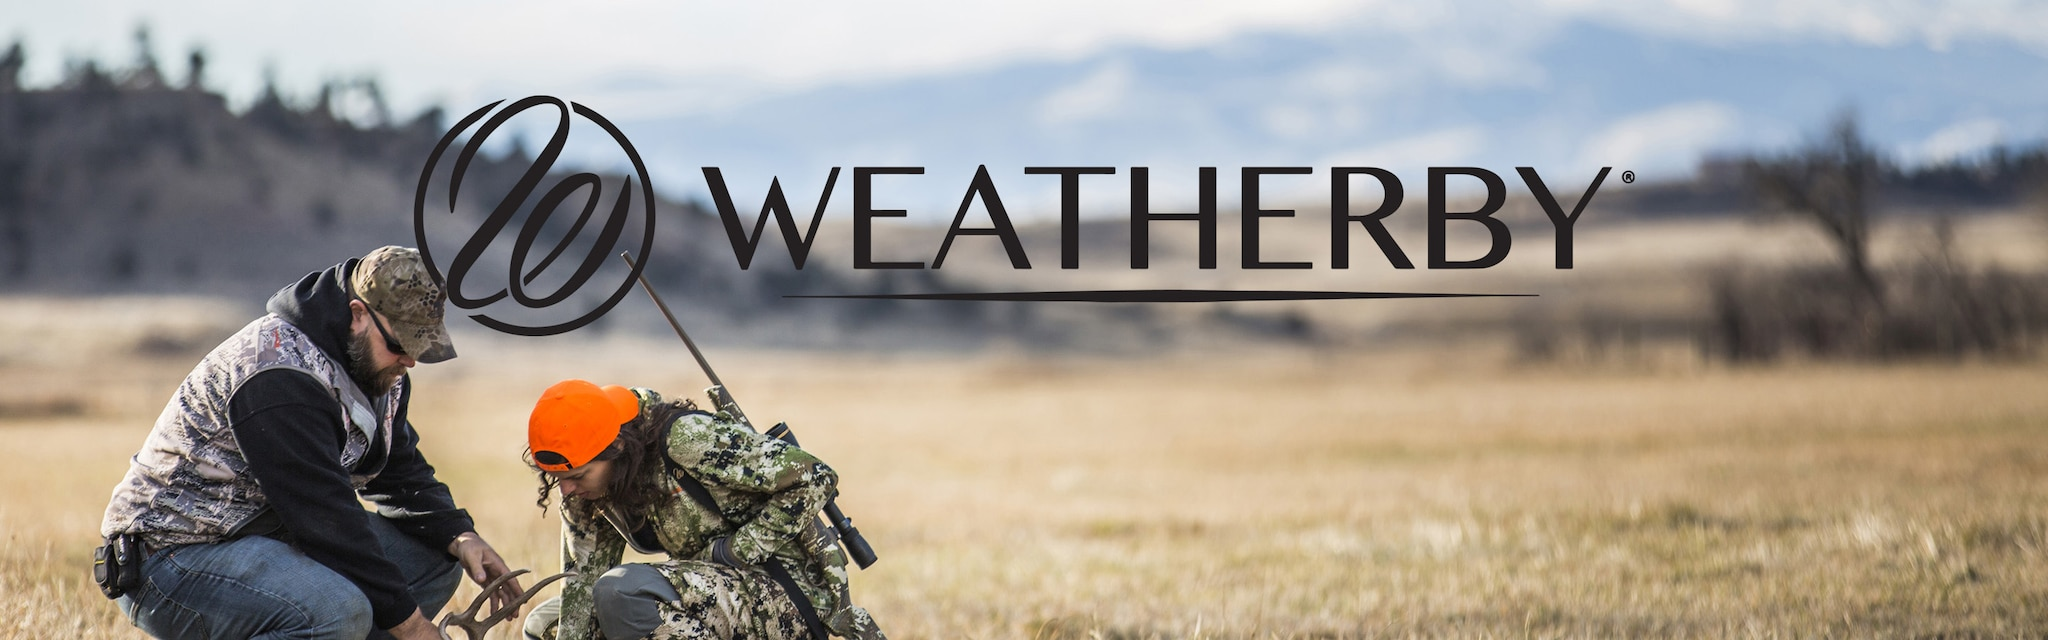 weatherby brand banner